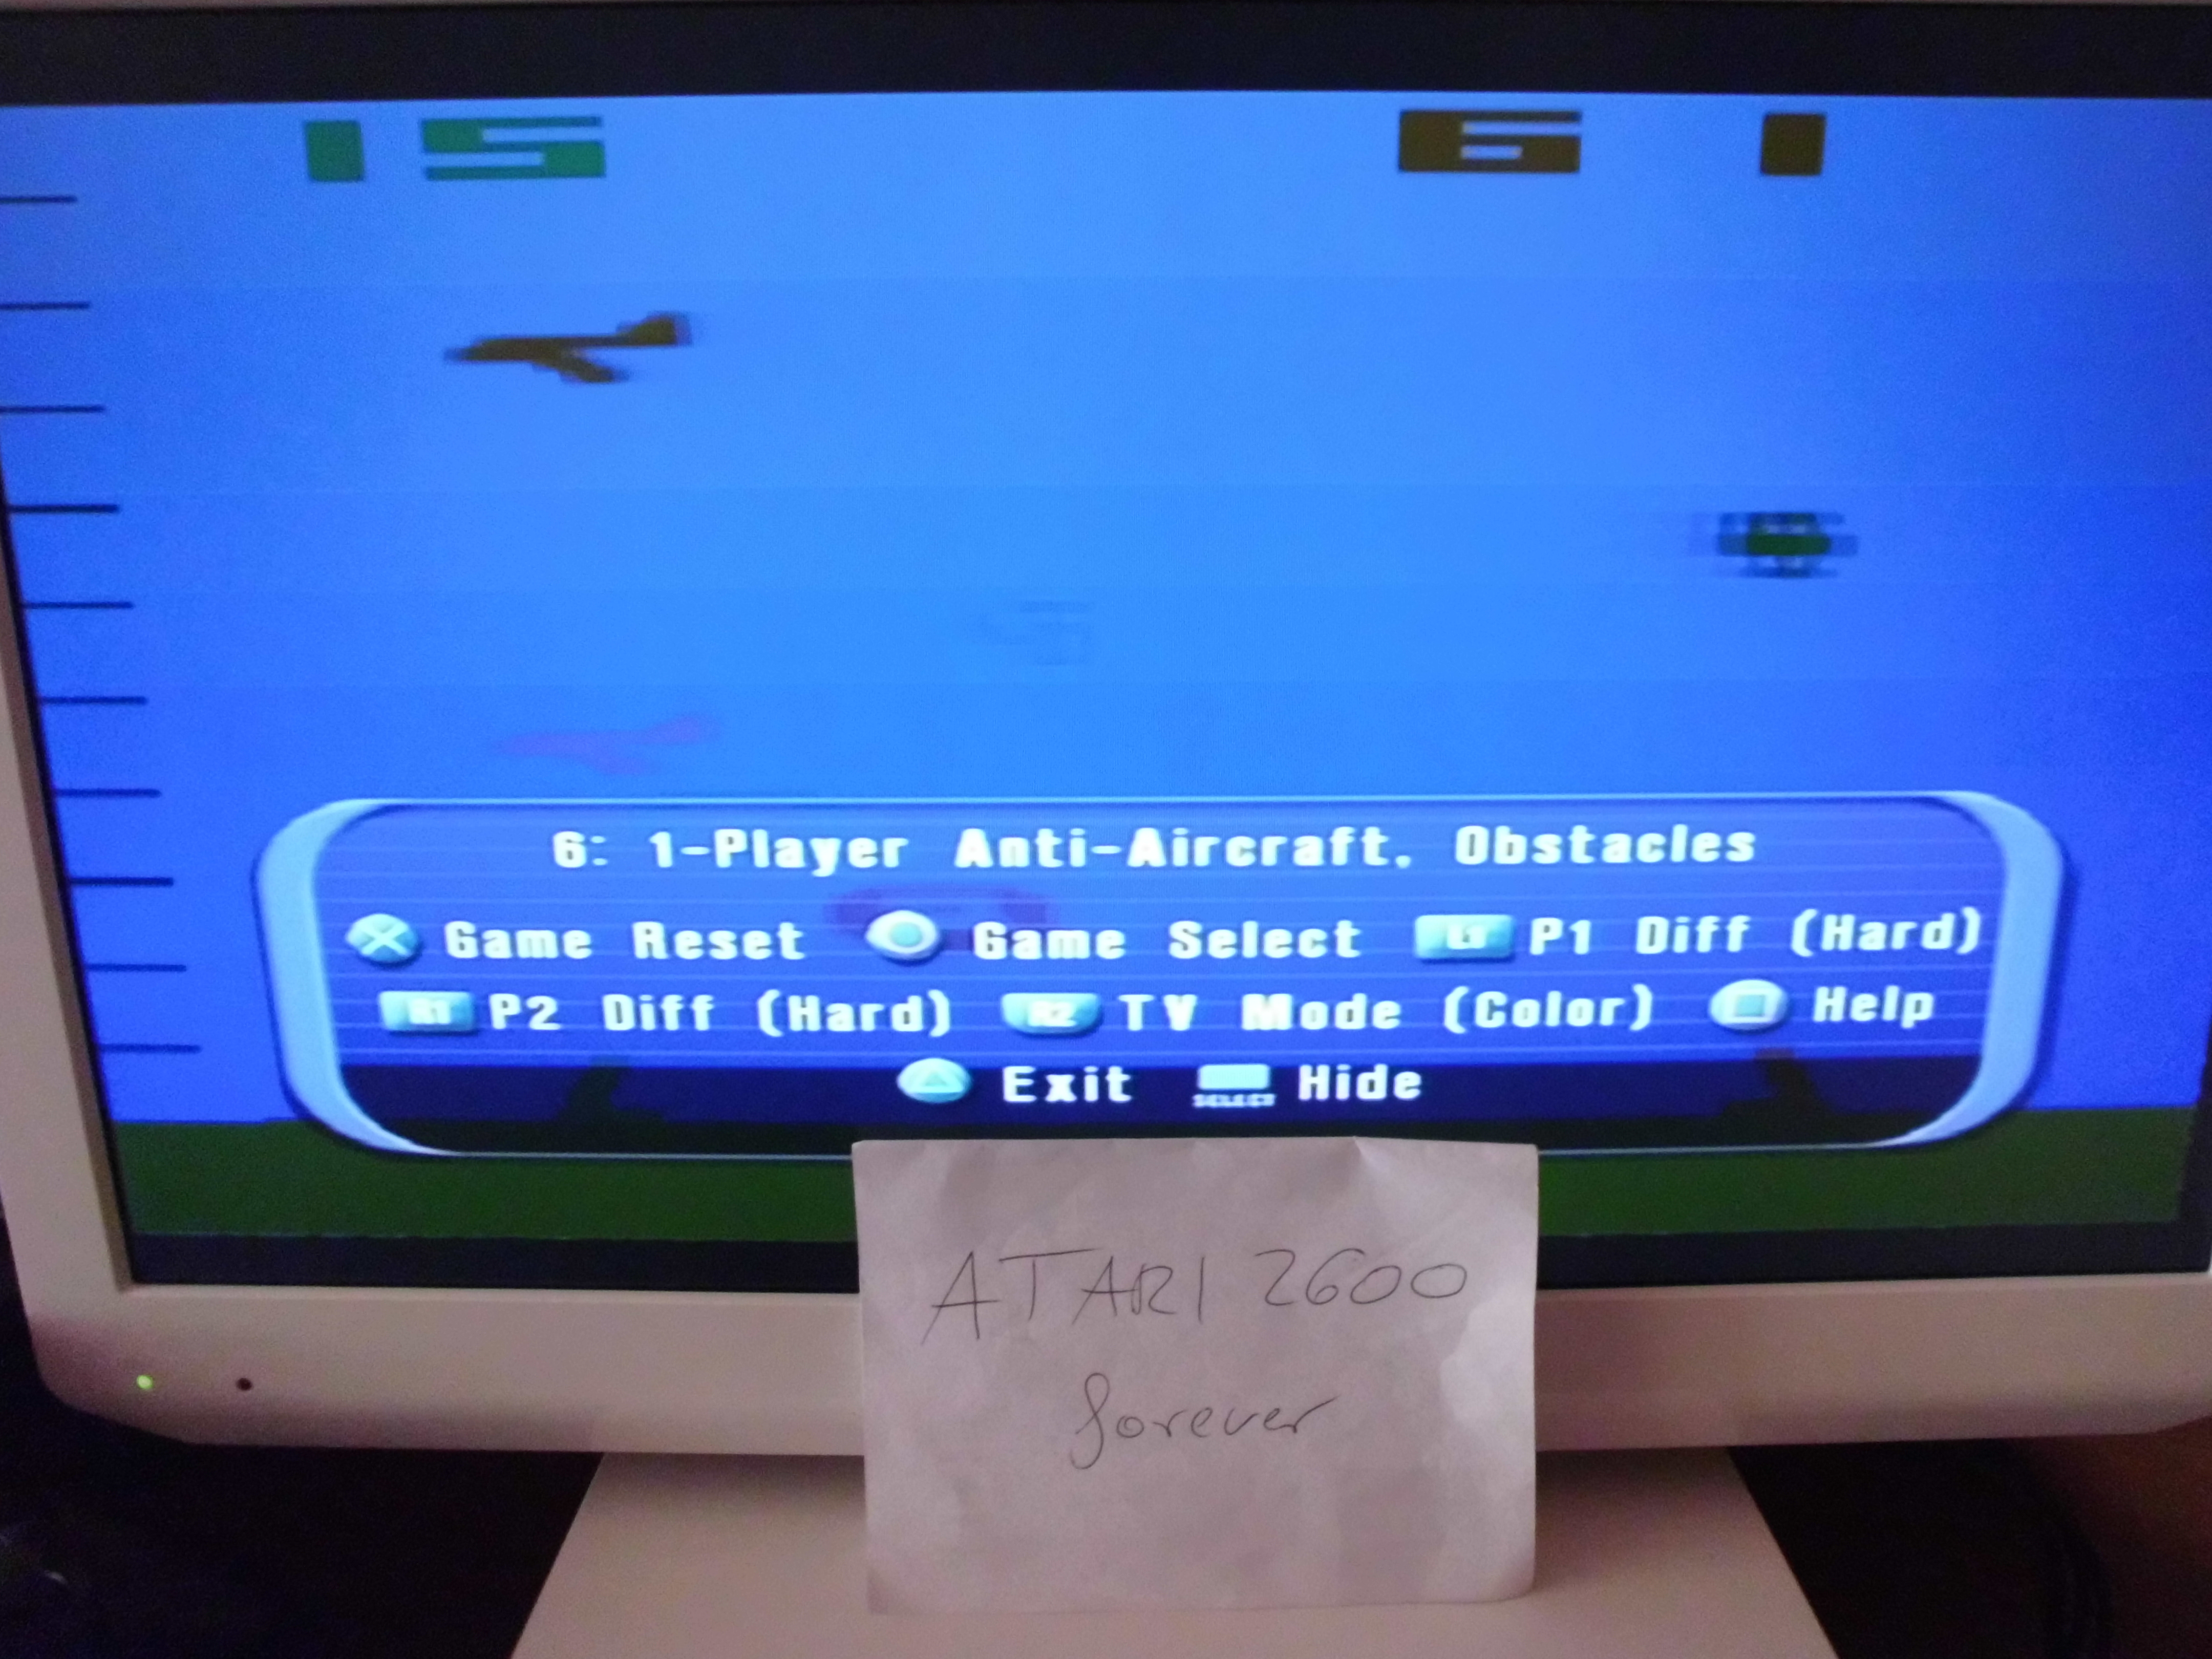 atari2600forever: Atari Anthology: Air-Sea Battle [Game 6A: Point Difference] (Playstation 2) 46 points on 2018-05-04 10:55:40